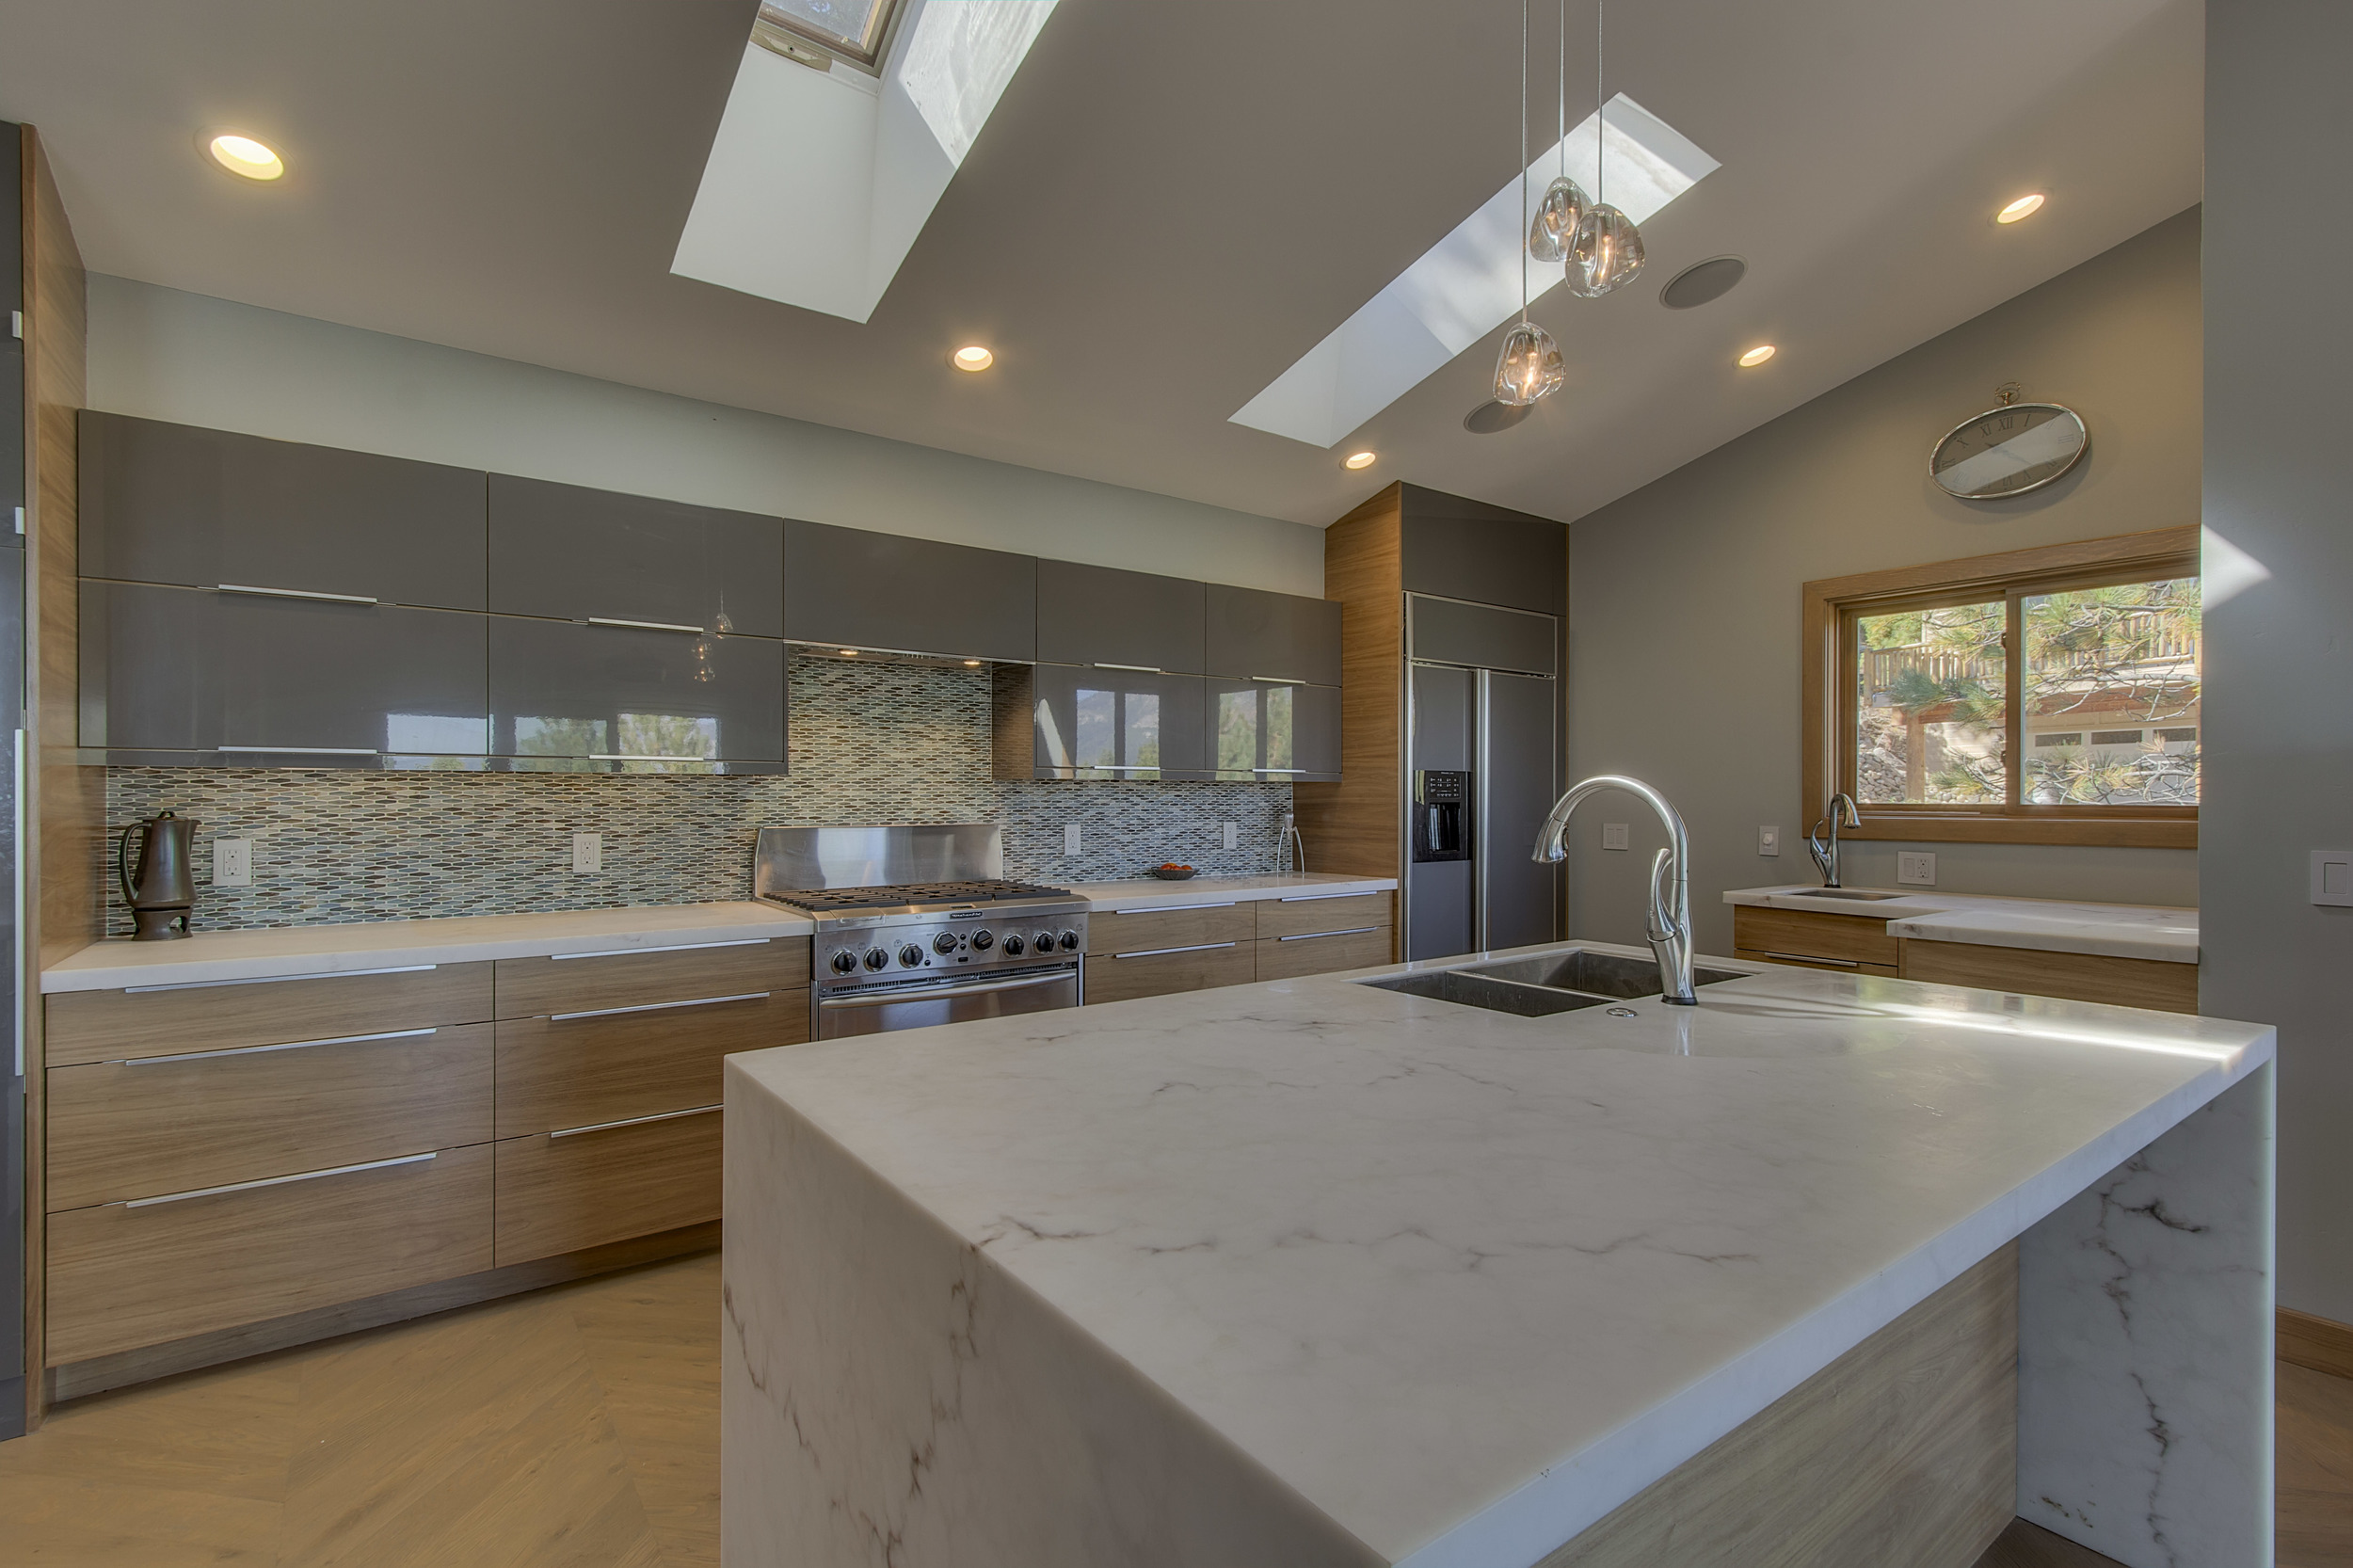 tahoe mtn, kitchen remodeled 3.jpg